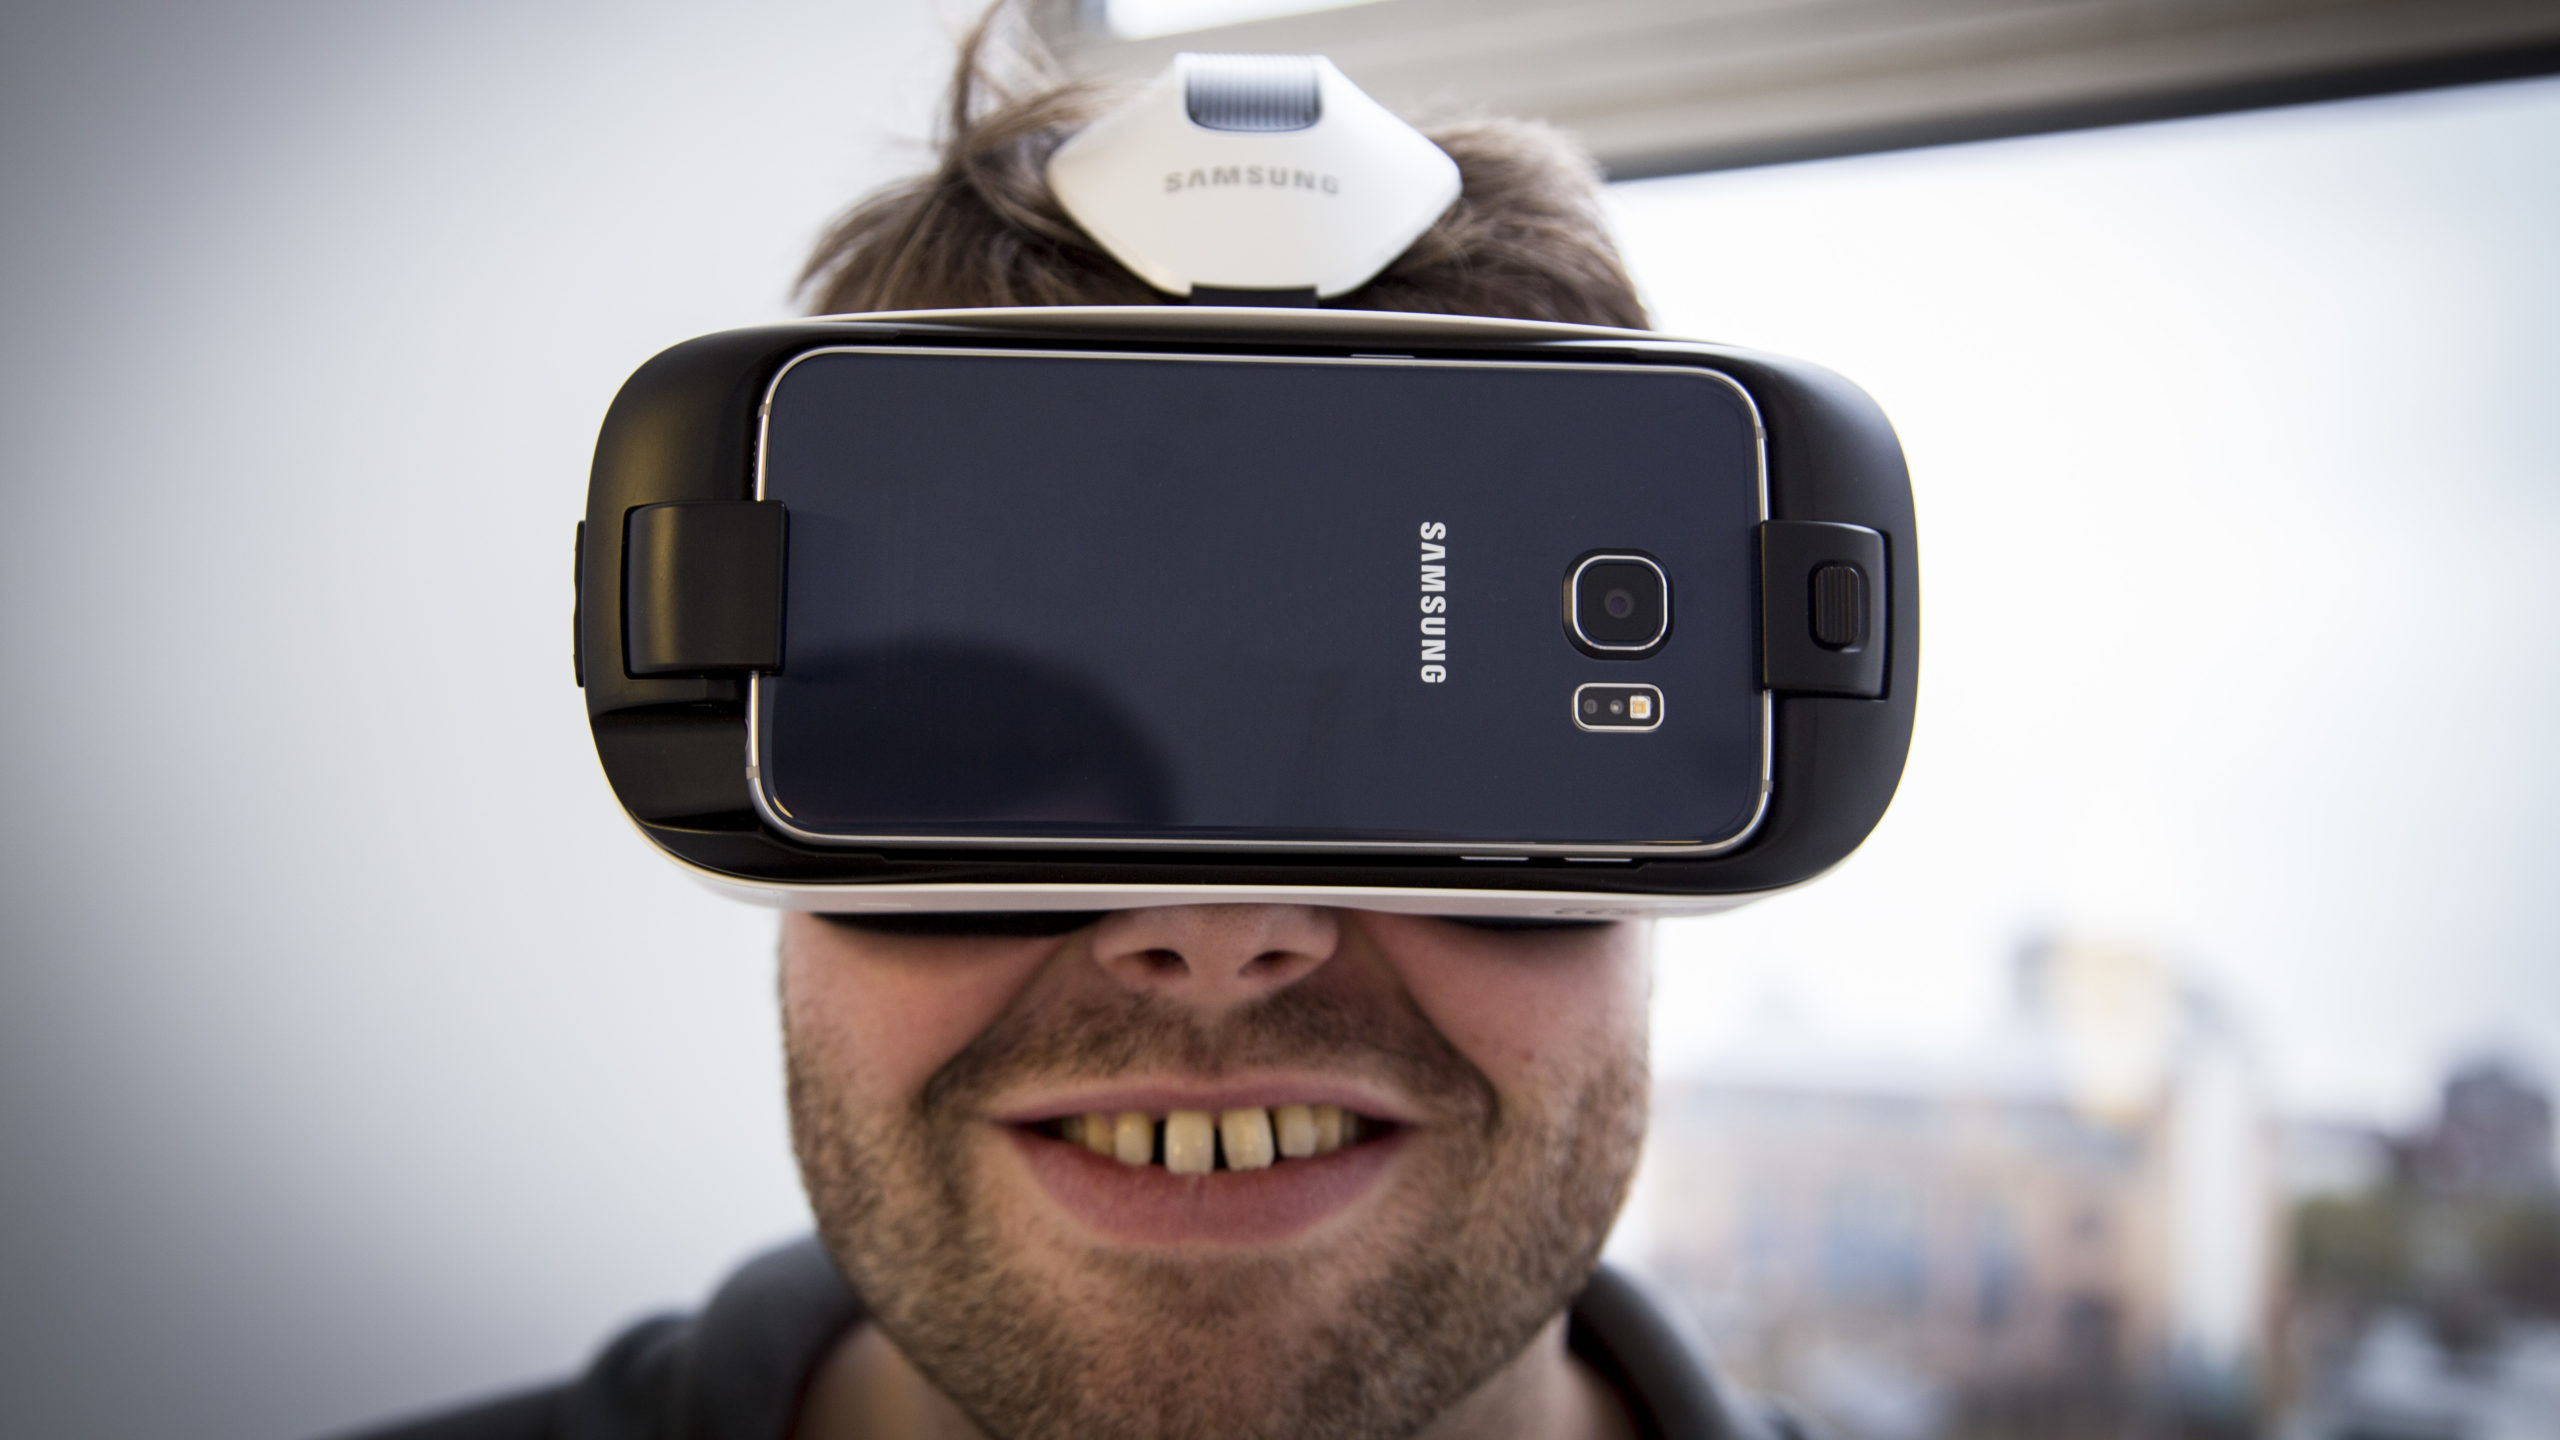 Samsung Gear VR review: The Gear VR offers an amazing experience, but it does make you look like a fool